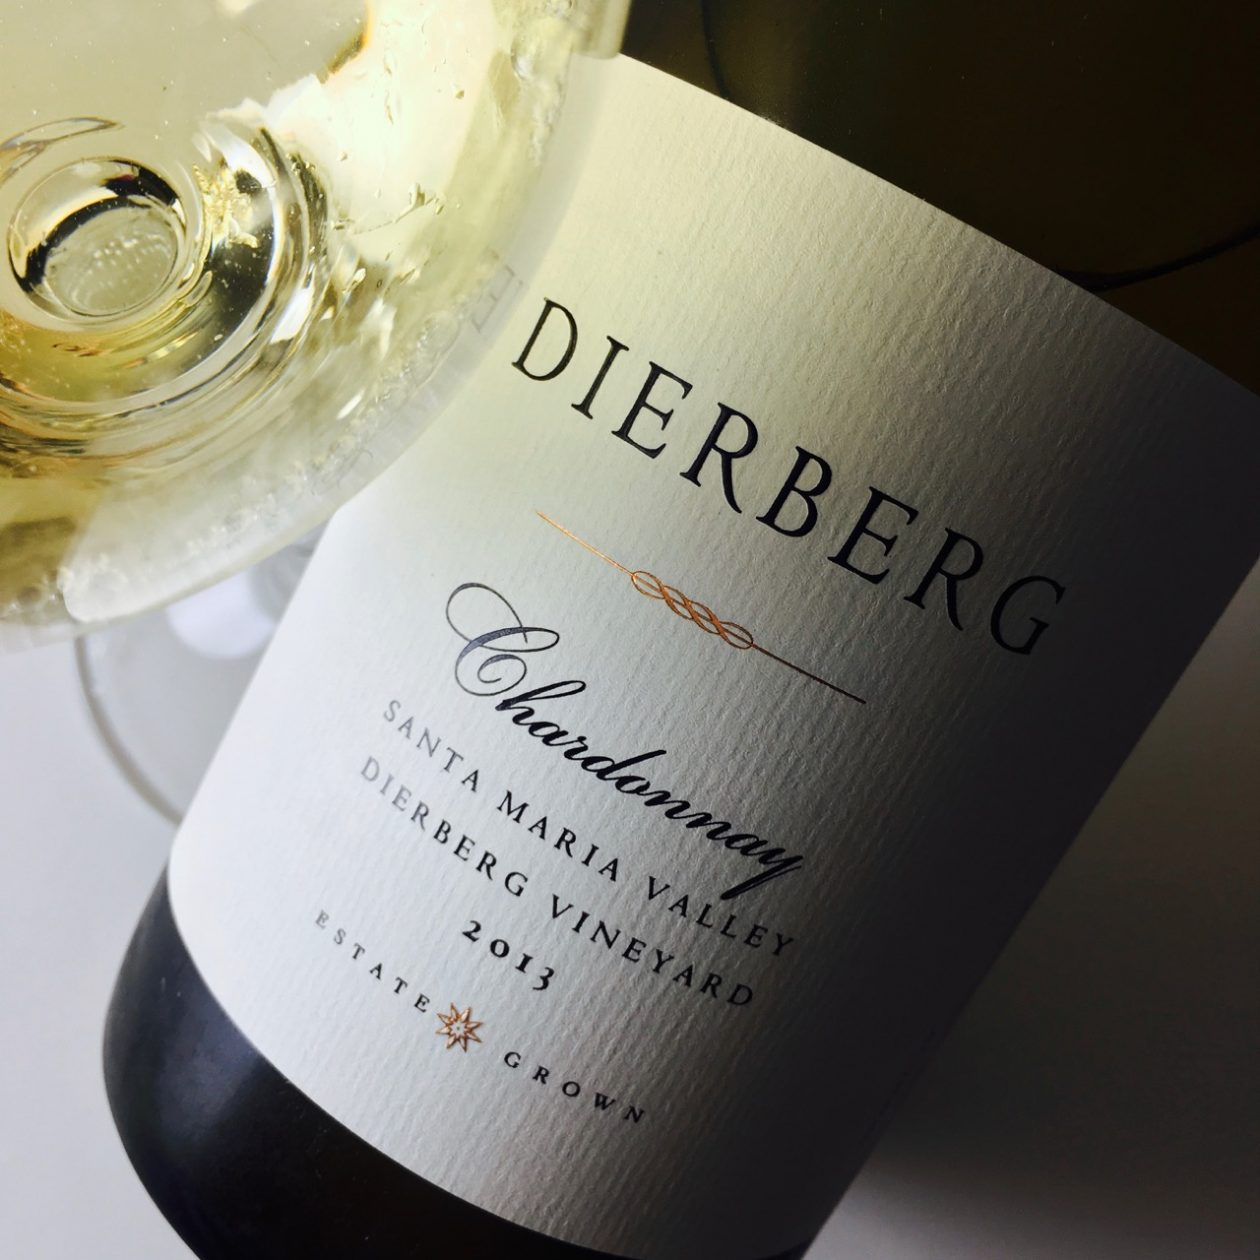 2013 Dierberg Chardonnay Estate Santa Maria Valley